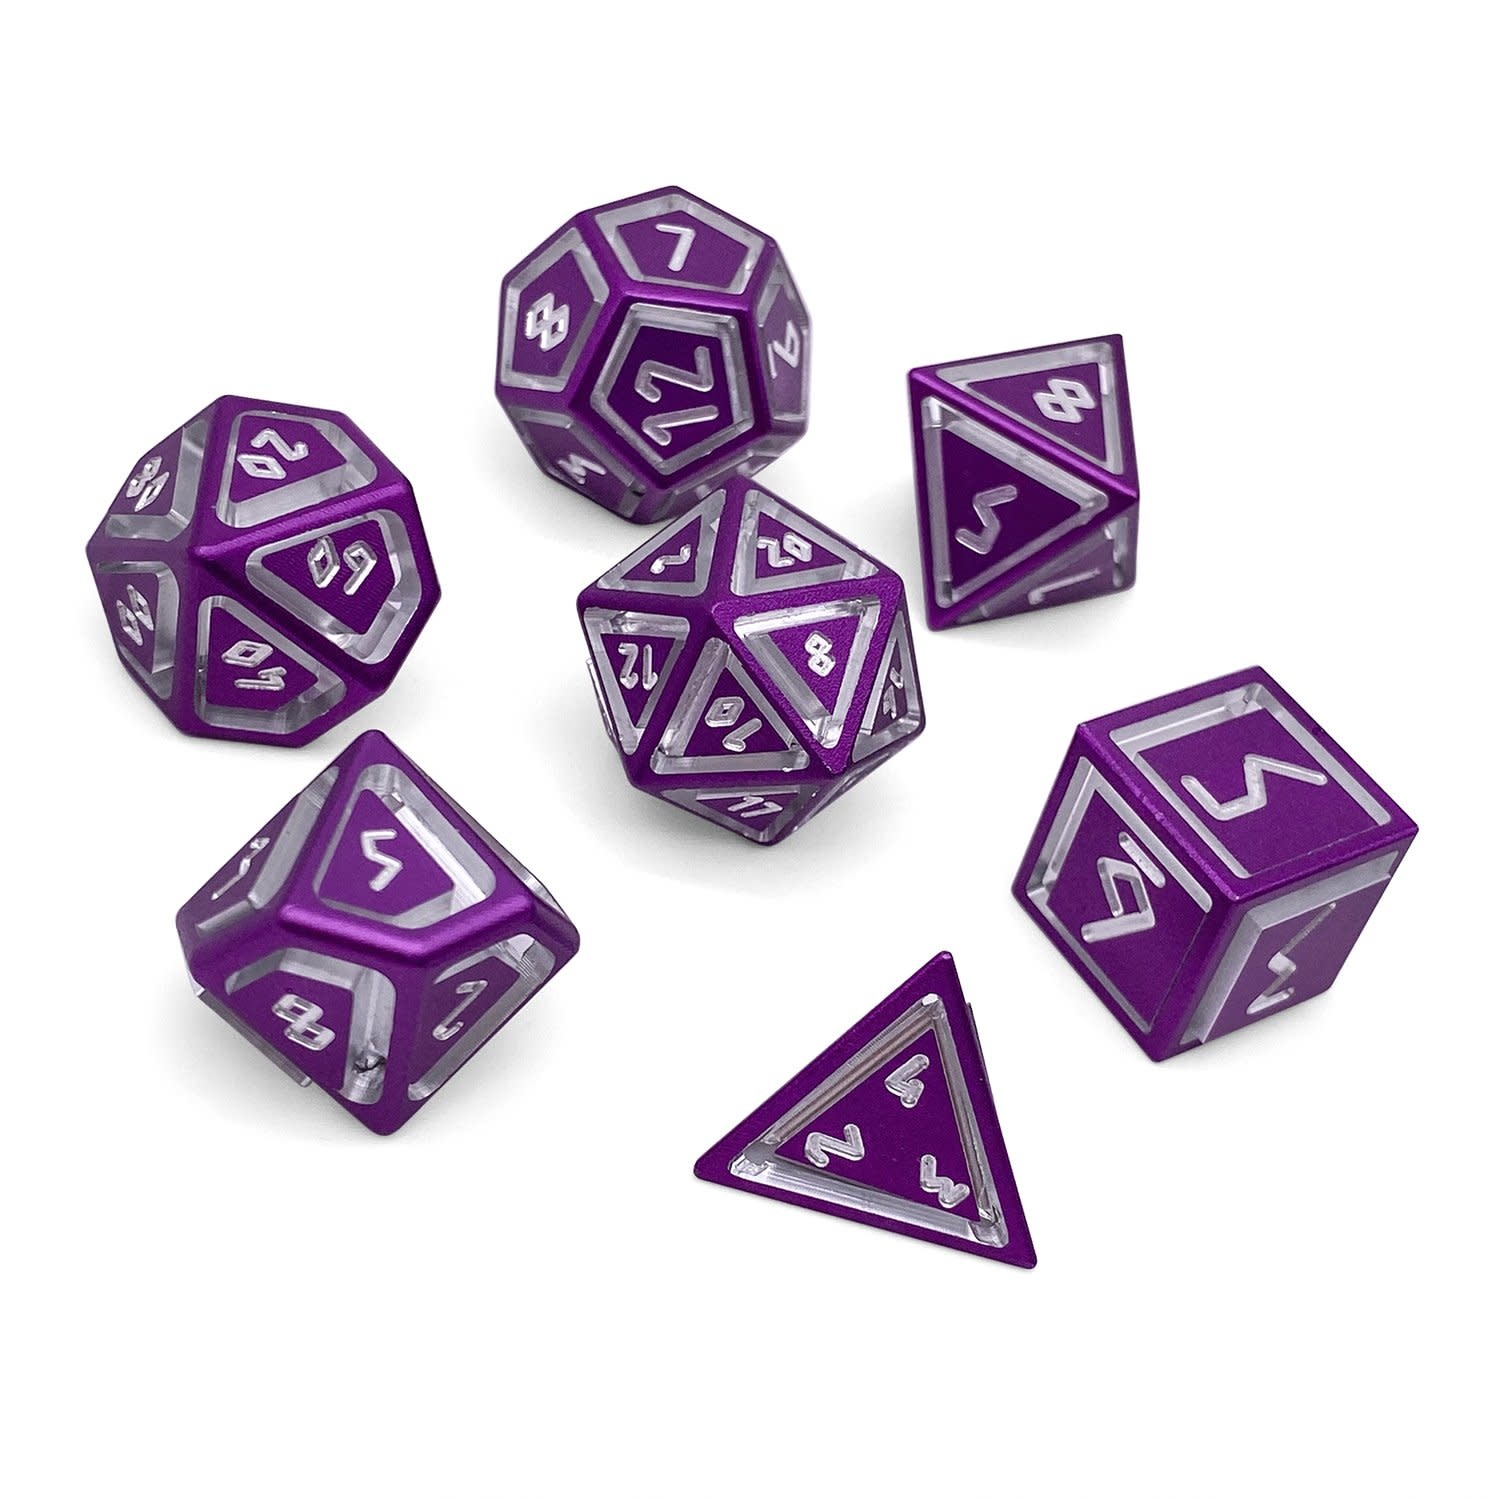 Norse Foundry Nimbus Dice Lich Purple Table Top Cafe Hero forge® is an online character design application that lets users create and buy customized tabletop miniatures and statuettes. norse foundry nimbus dice lich purple